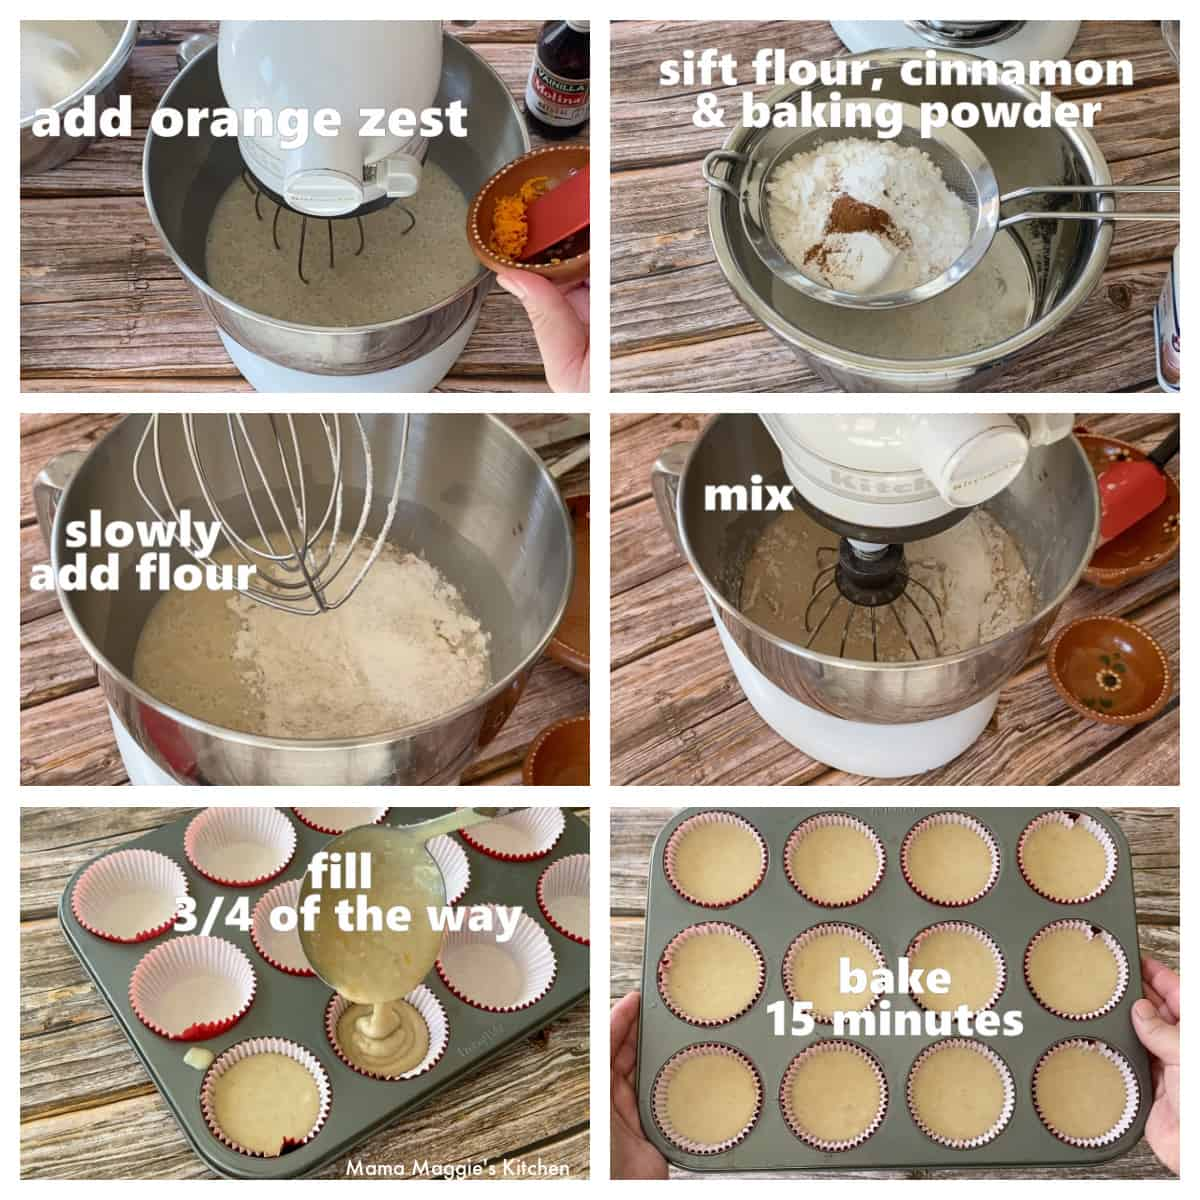 A collage showing how to fill a cupcake pan.